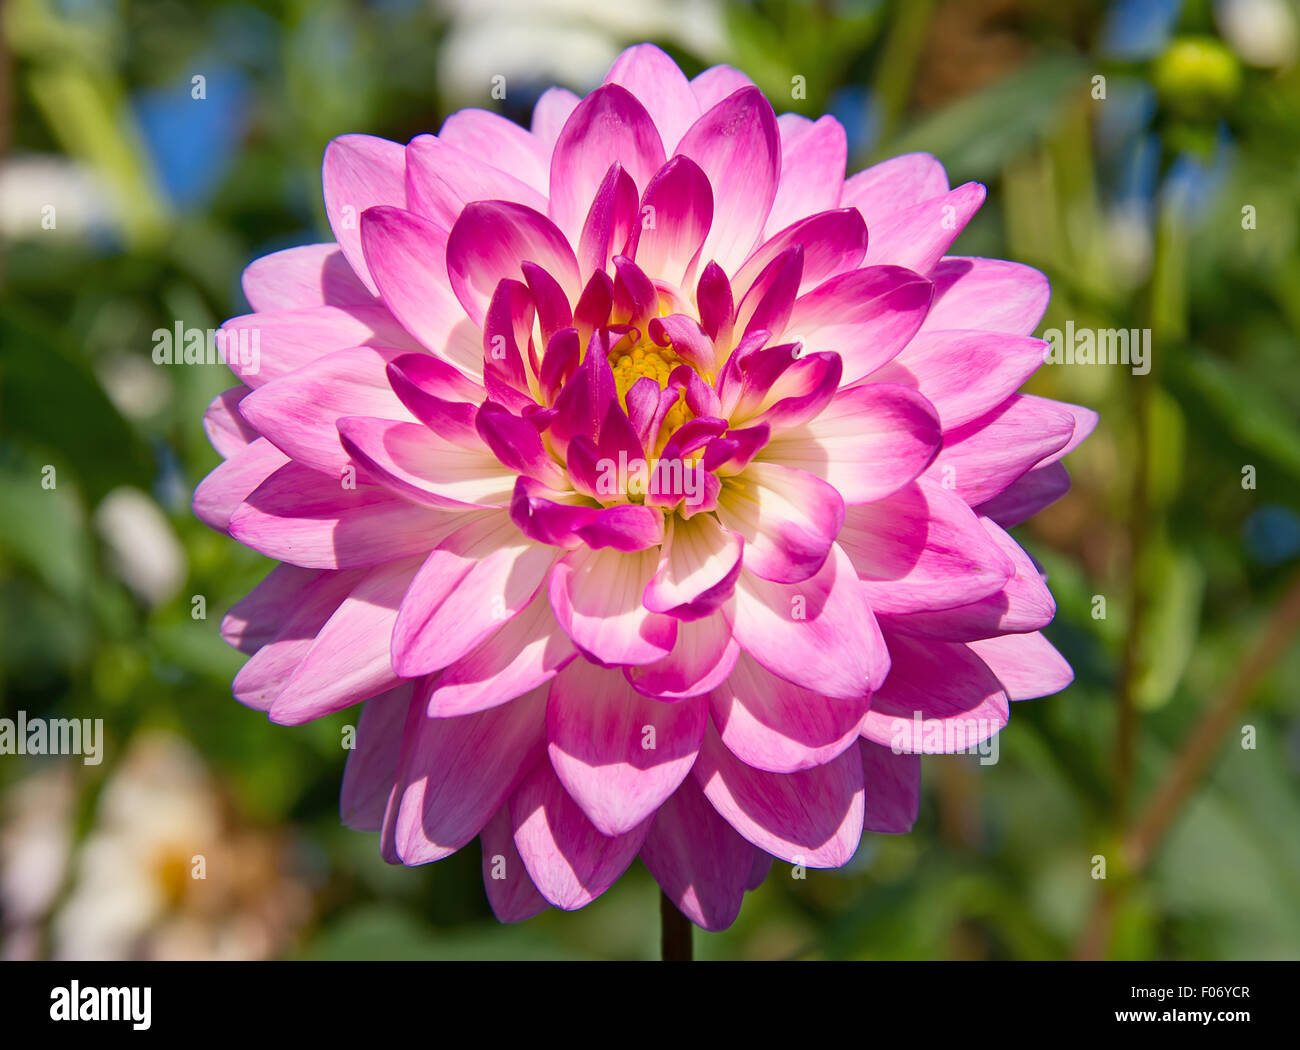 Colorful Dahlia Flower With Morning Dew Drops Stock Photo 86205079